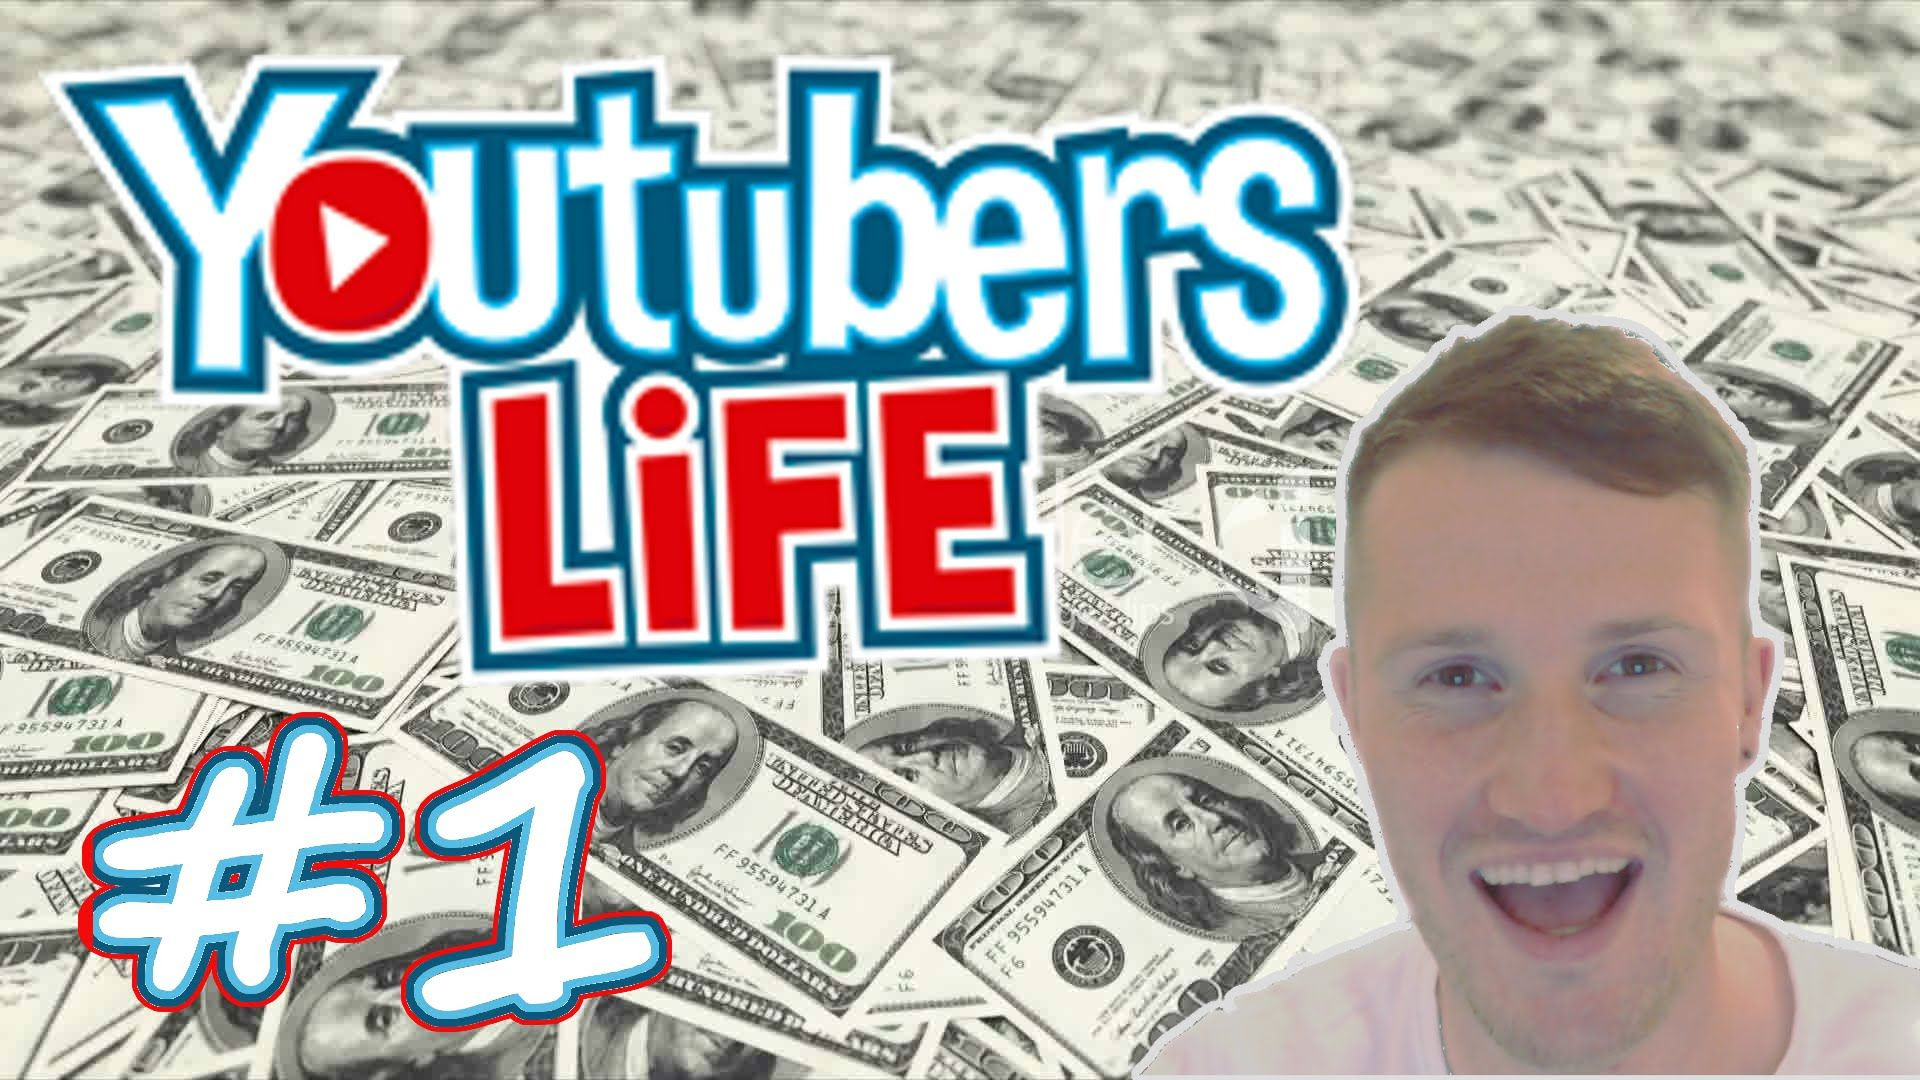 """""""STARTING A YOUTUBE CHANNEL"""" Youtubers Life Episode 1"""